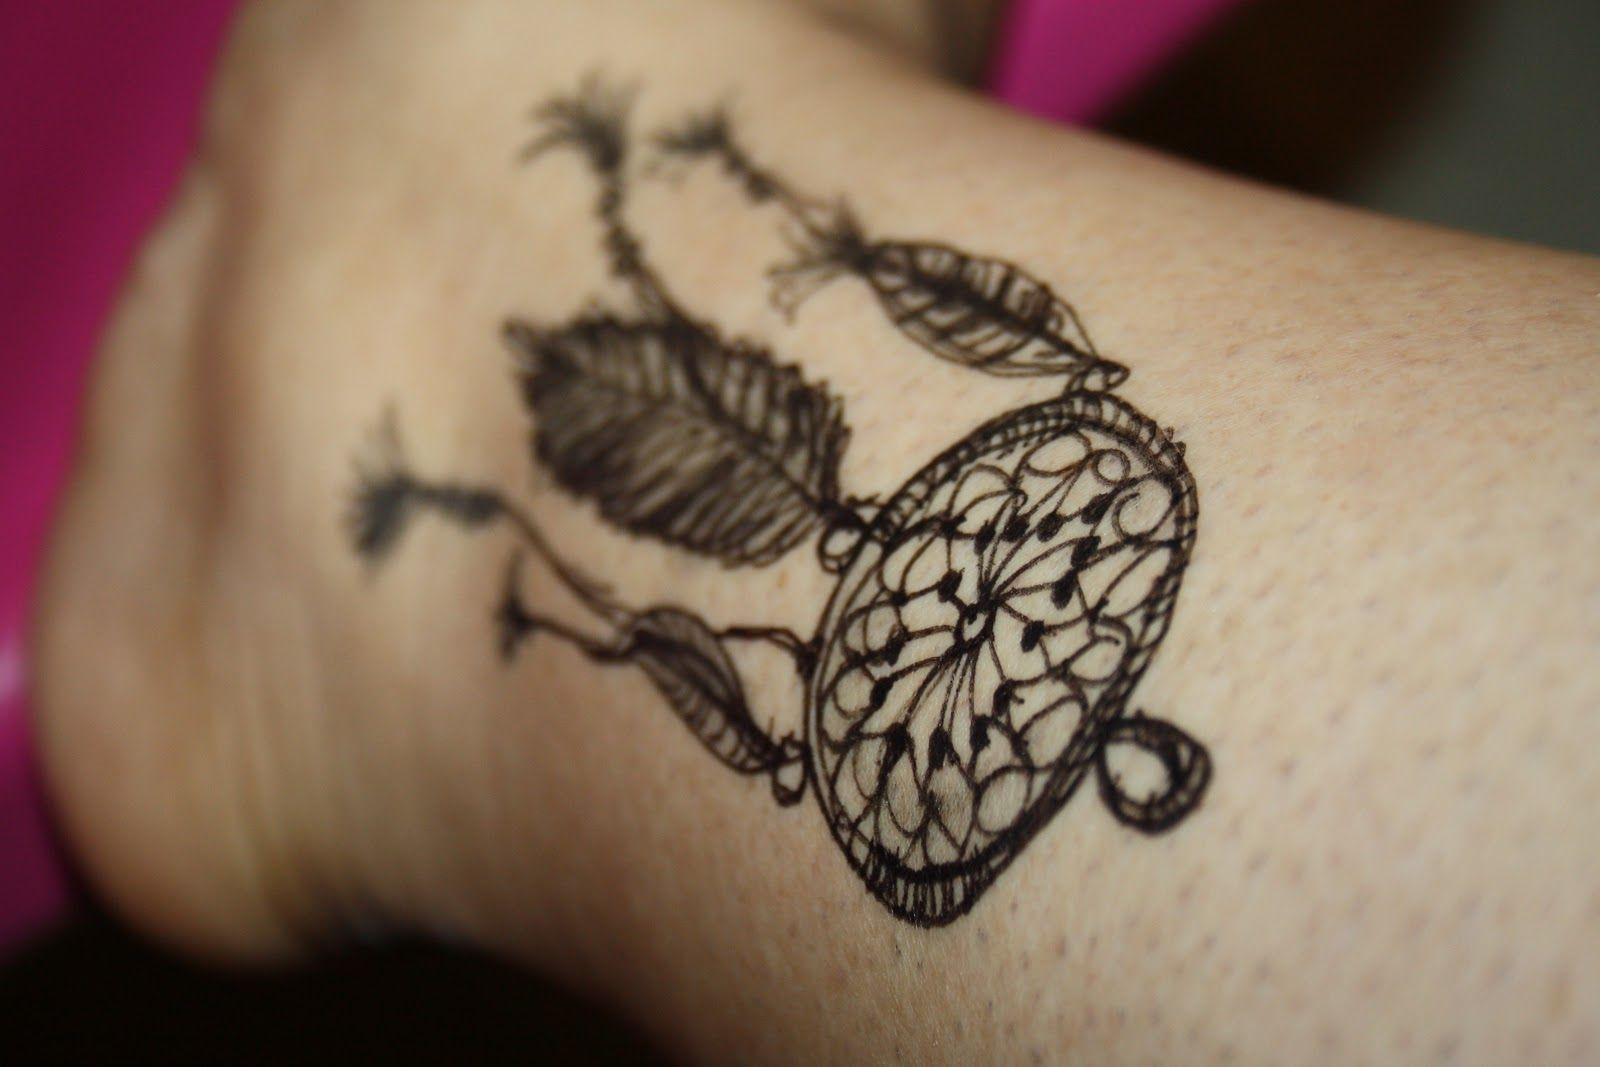 Dream Catcher Tattoo On Wrist Love This  My Style  Pinterest